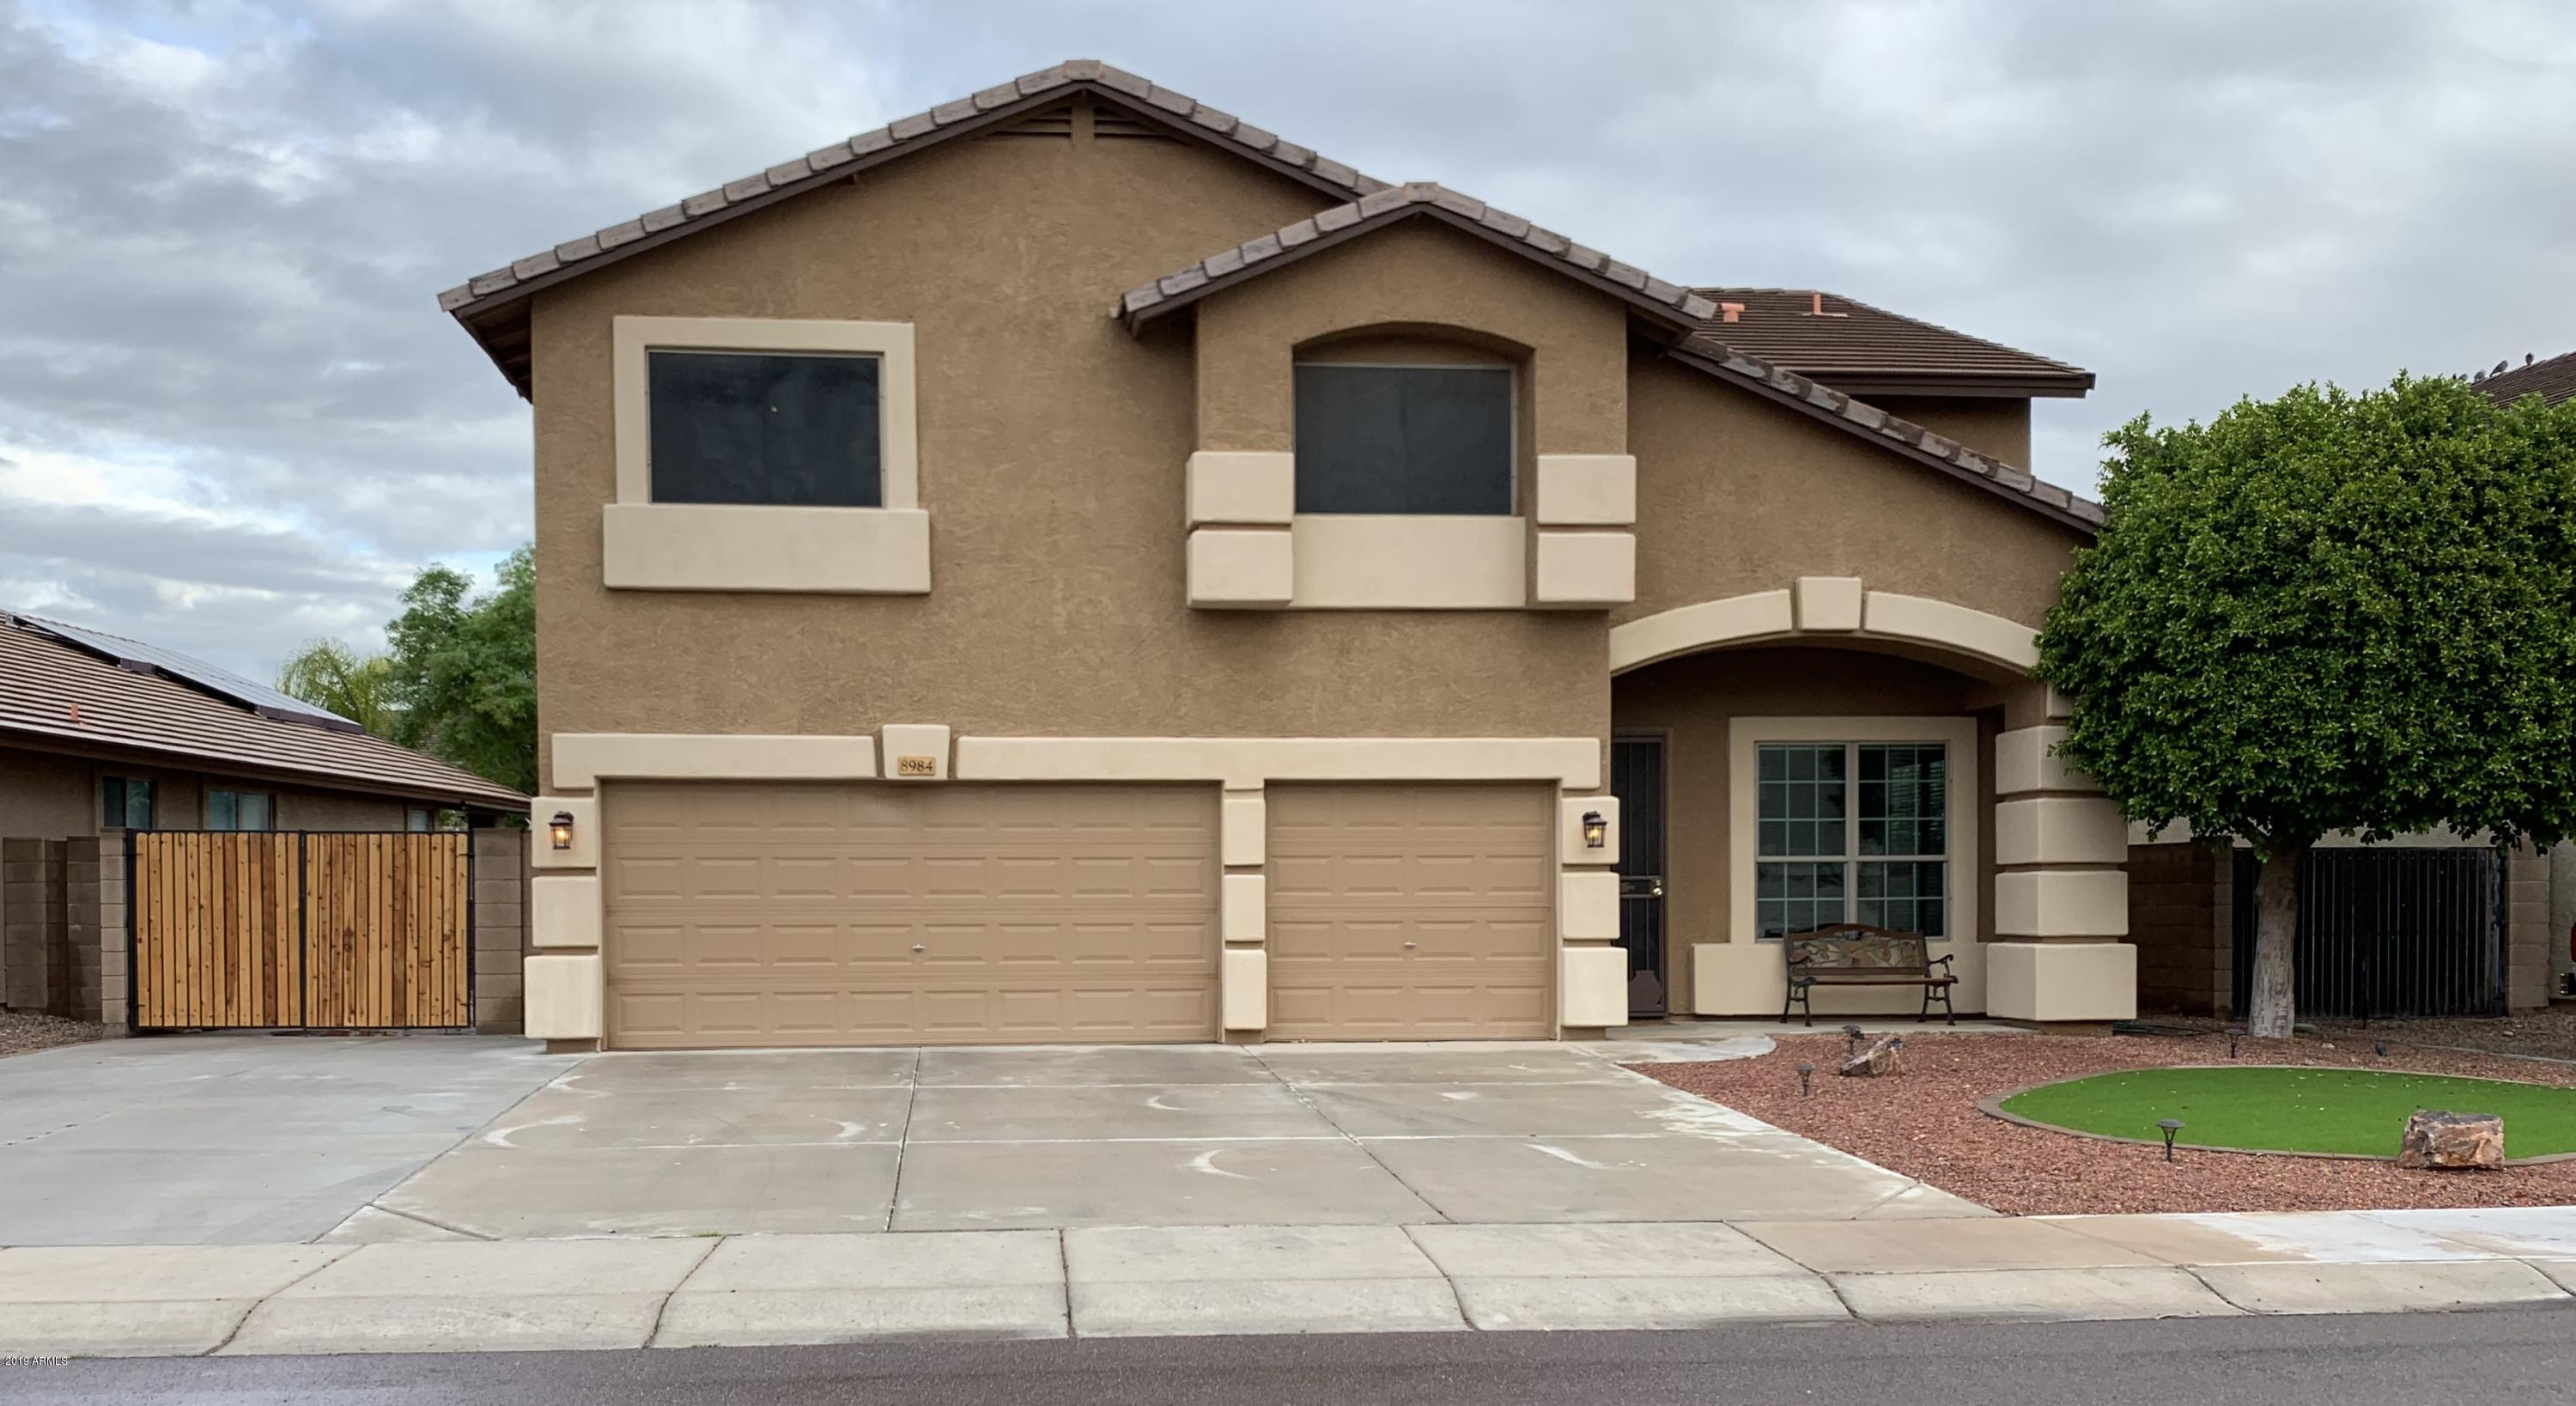 8984 W MARY ANN Drive, Peoria in Maricopa County, AZ 85382 Home for Sale